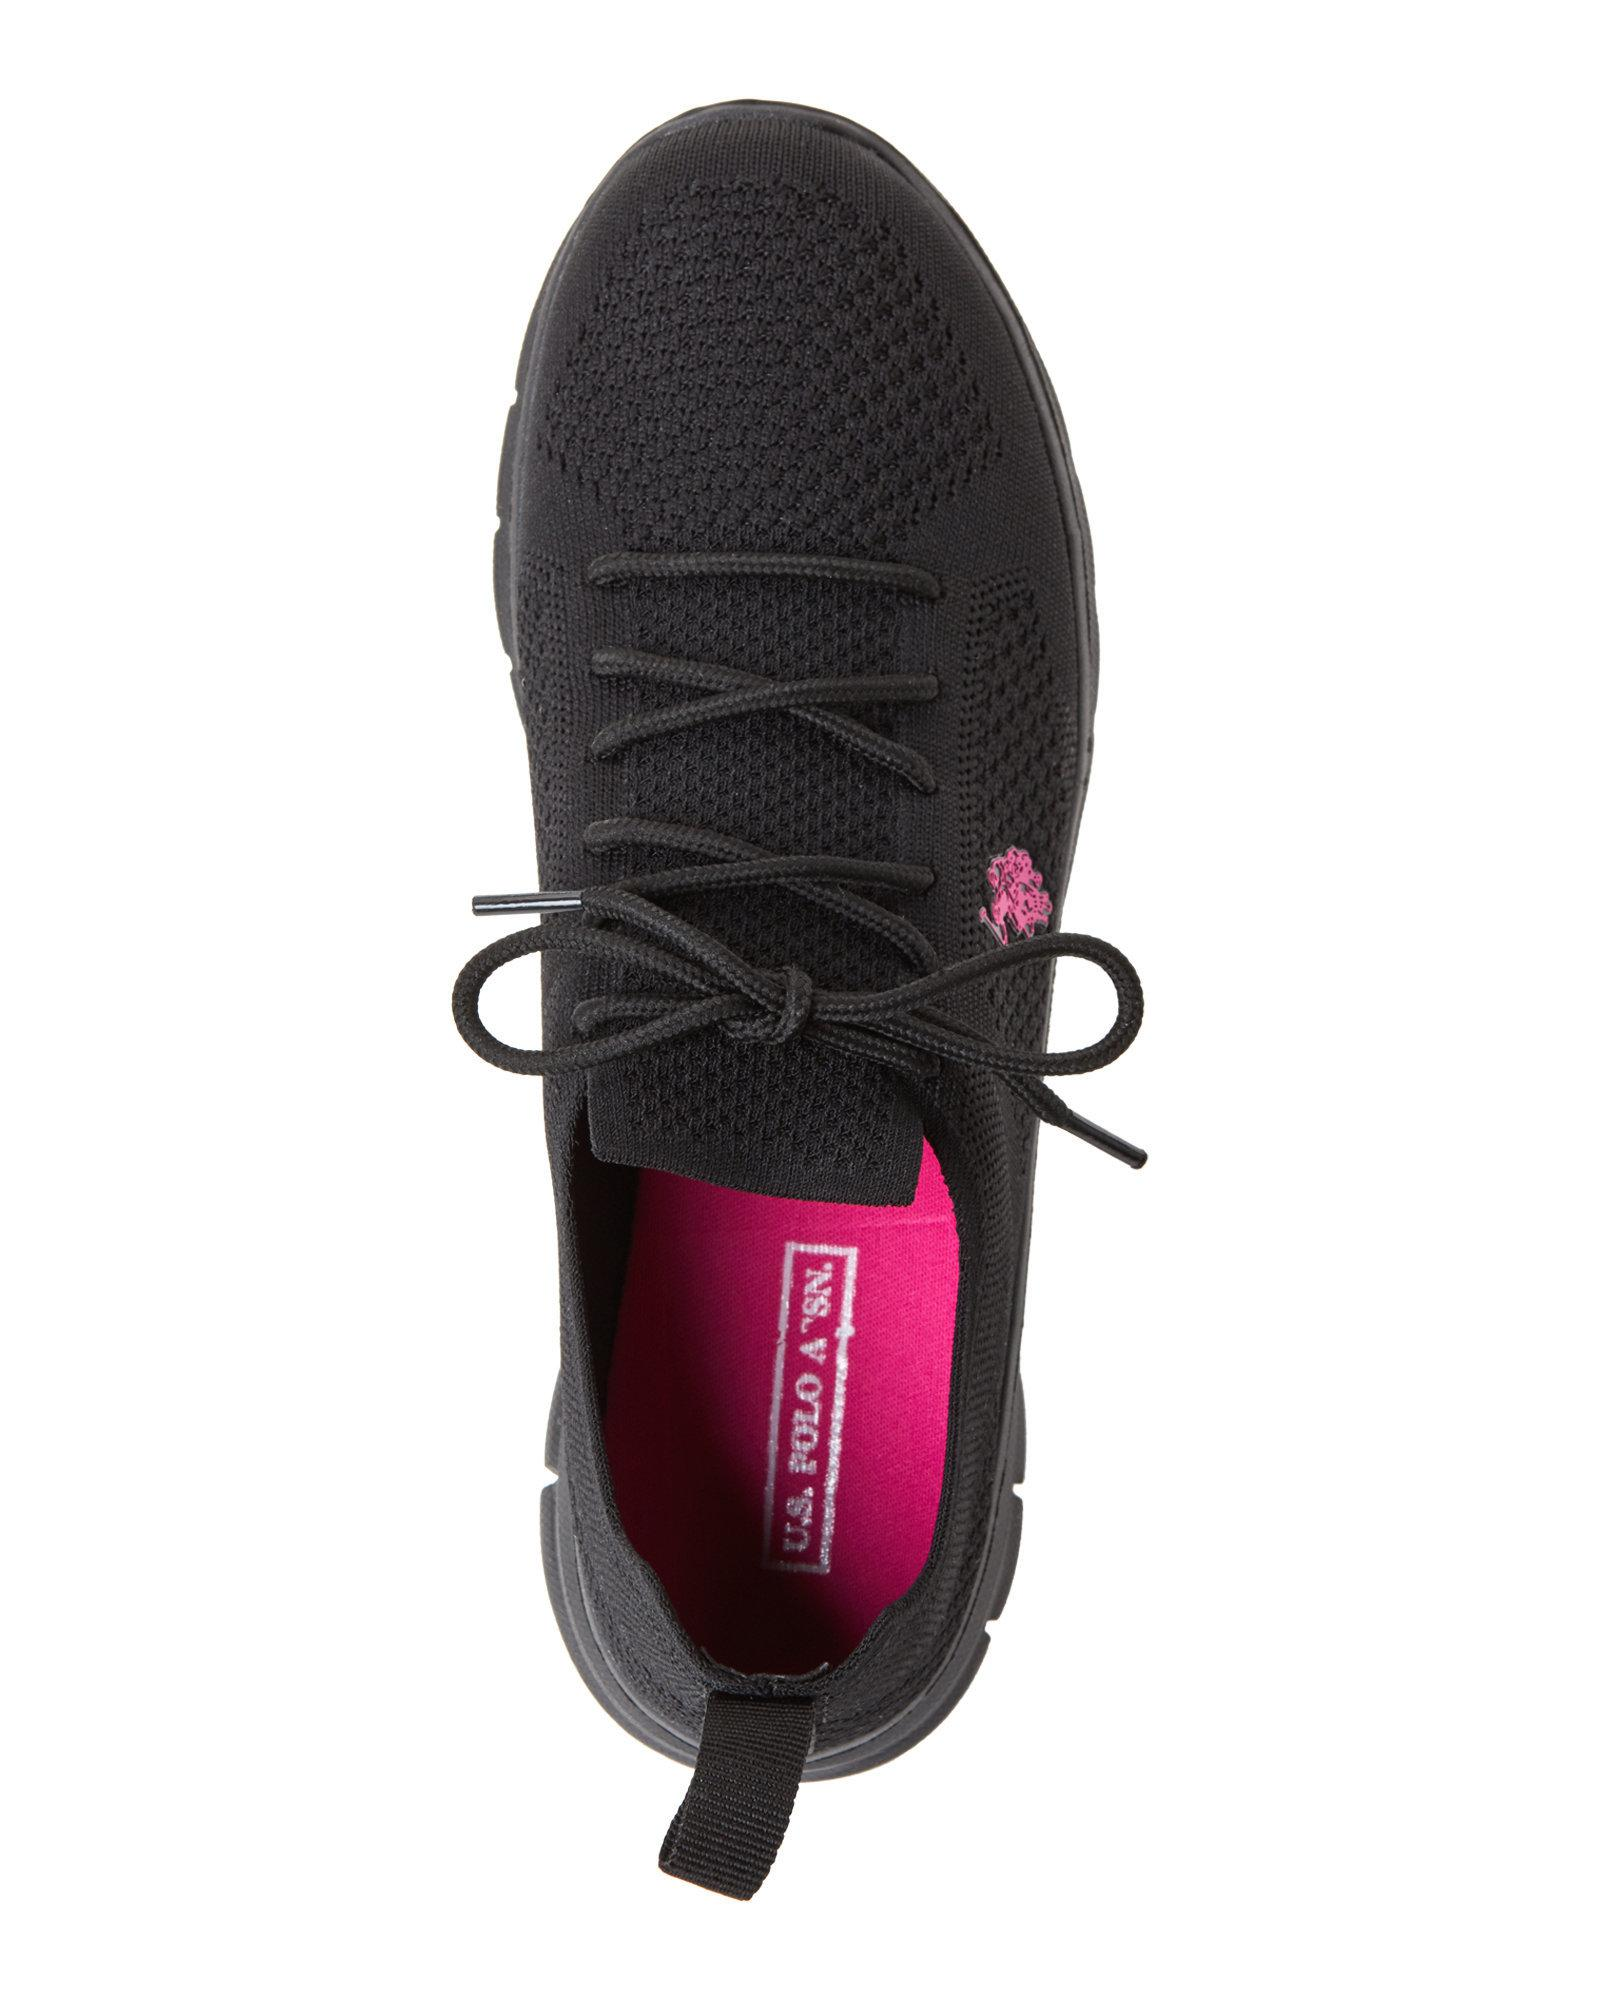 us polo tennis shoes, OFF 79%,Buy!